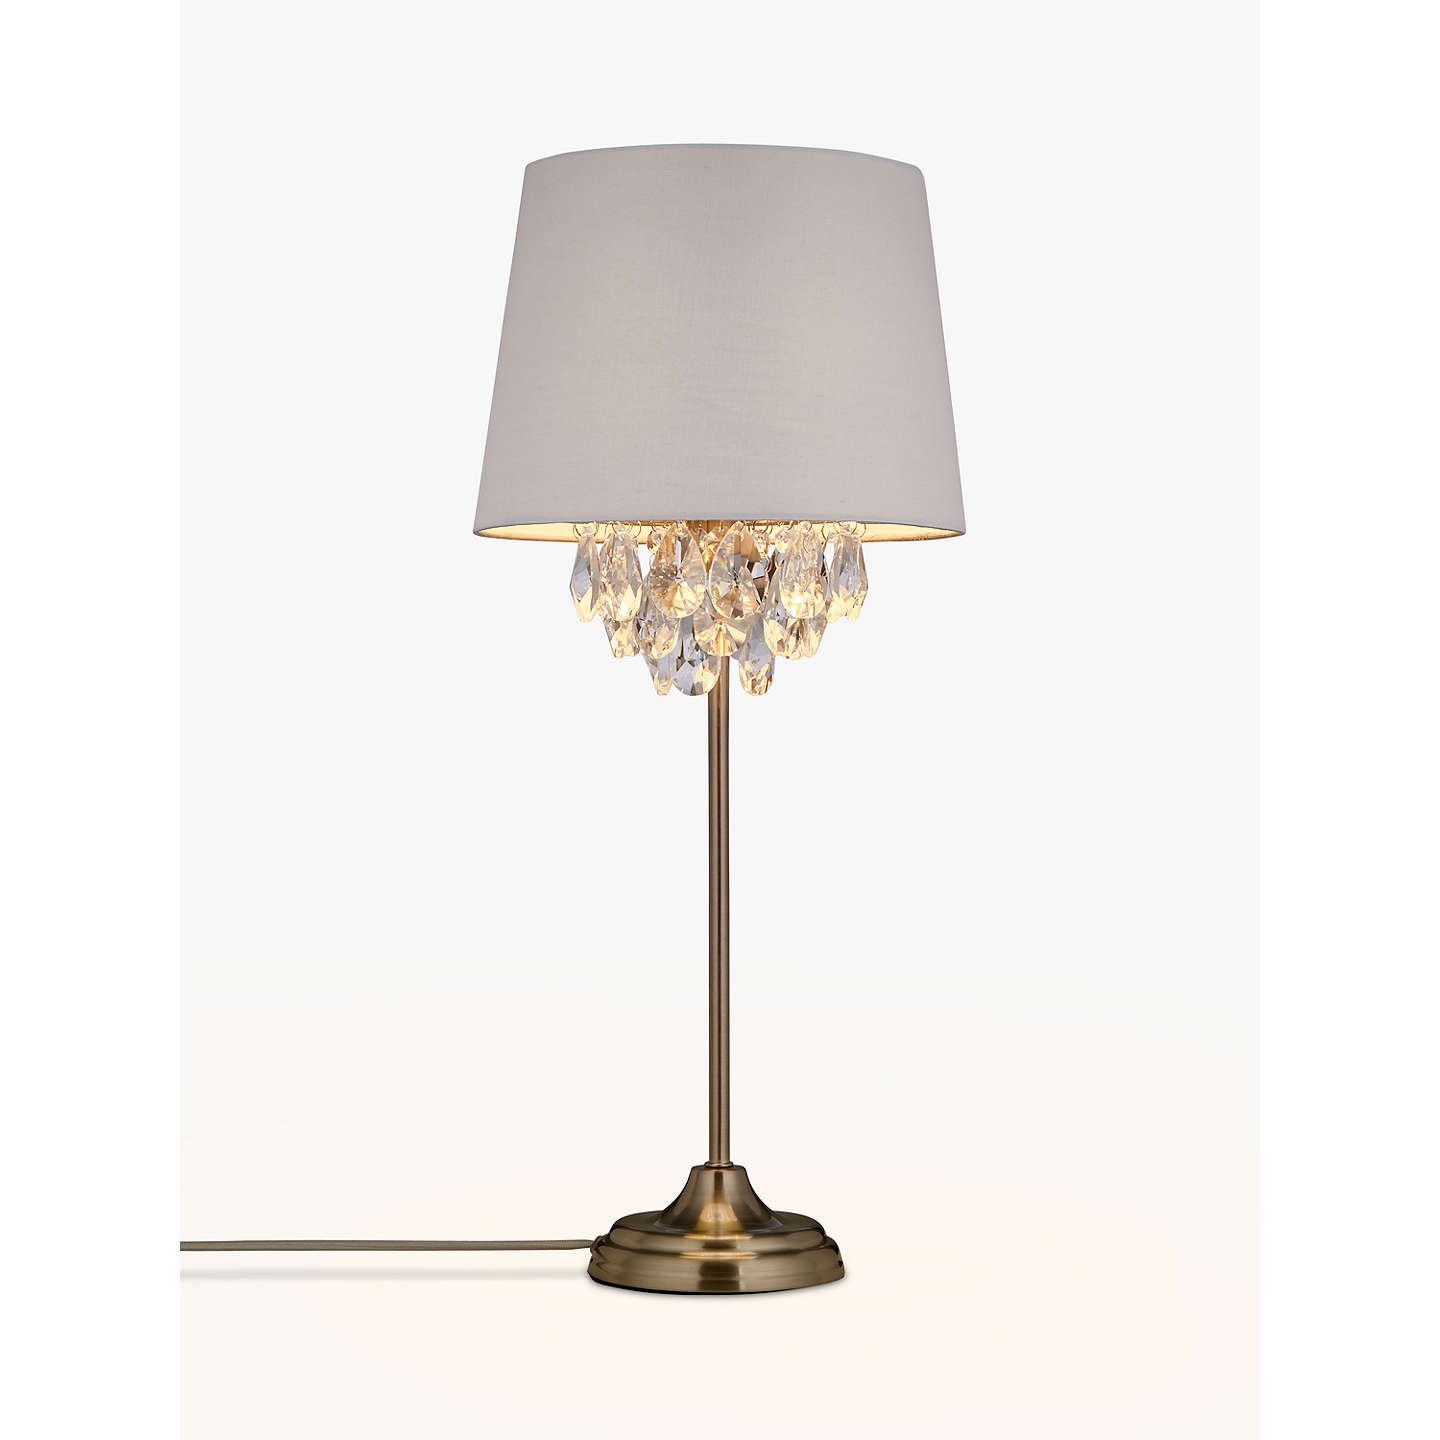 John lewis christabel table lamp satin nickel at john lewis buyjohn lewis christabel table lamp satin nickel online at johnlewis mozeypictures Image collections